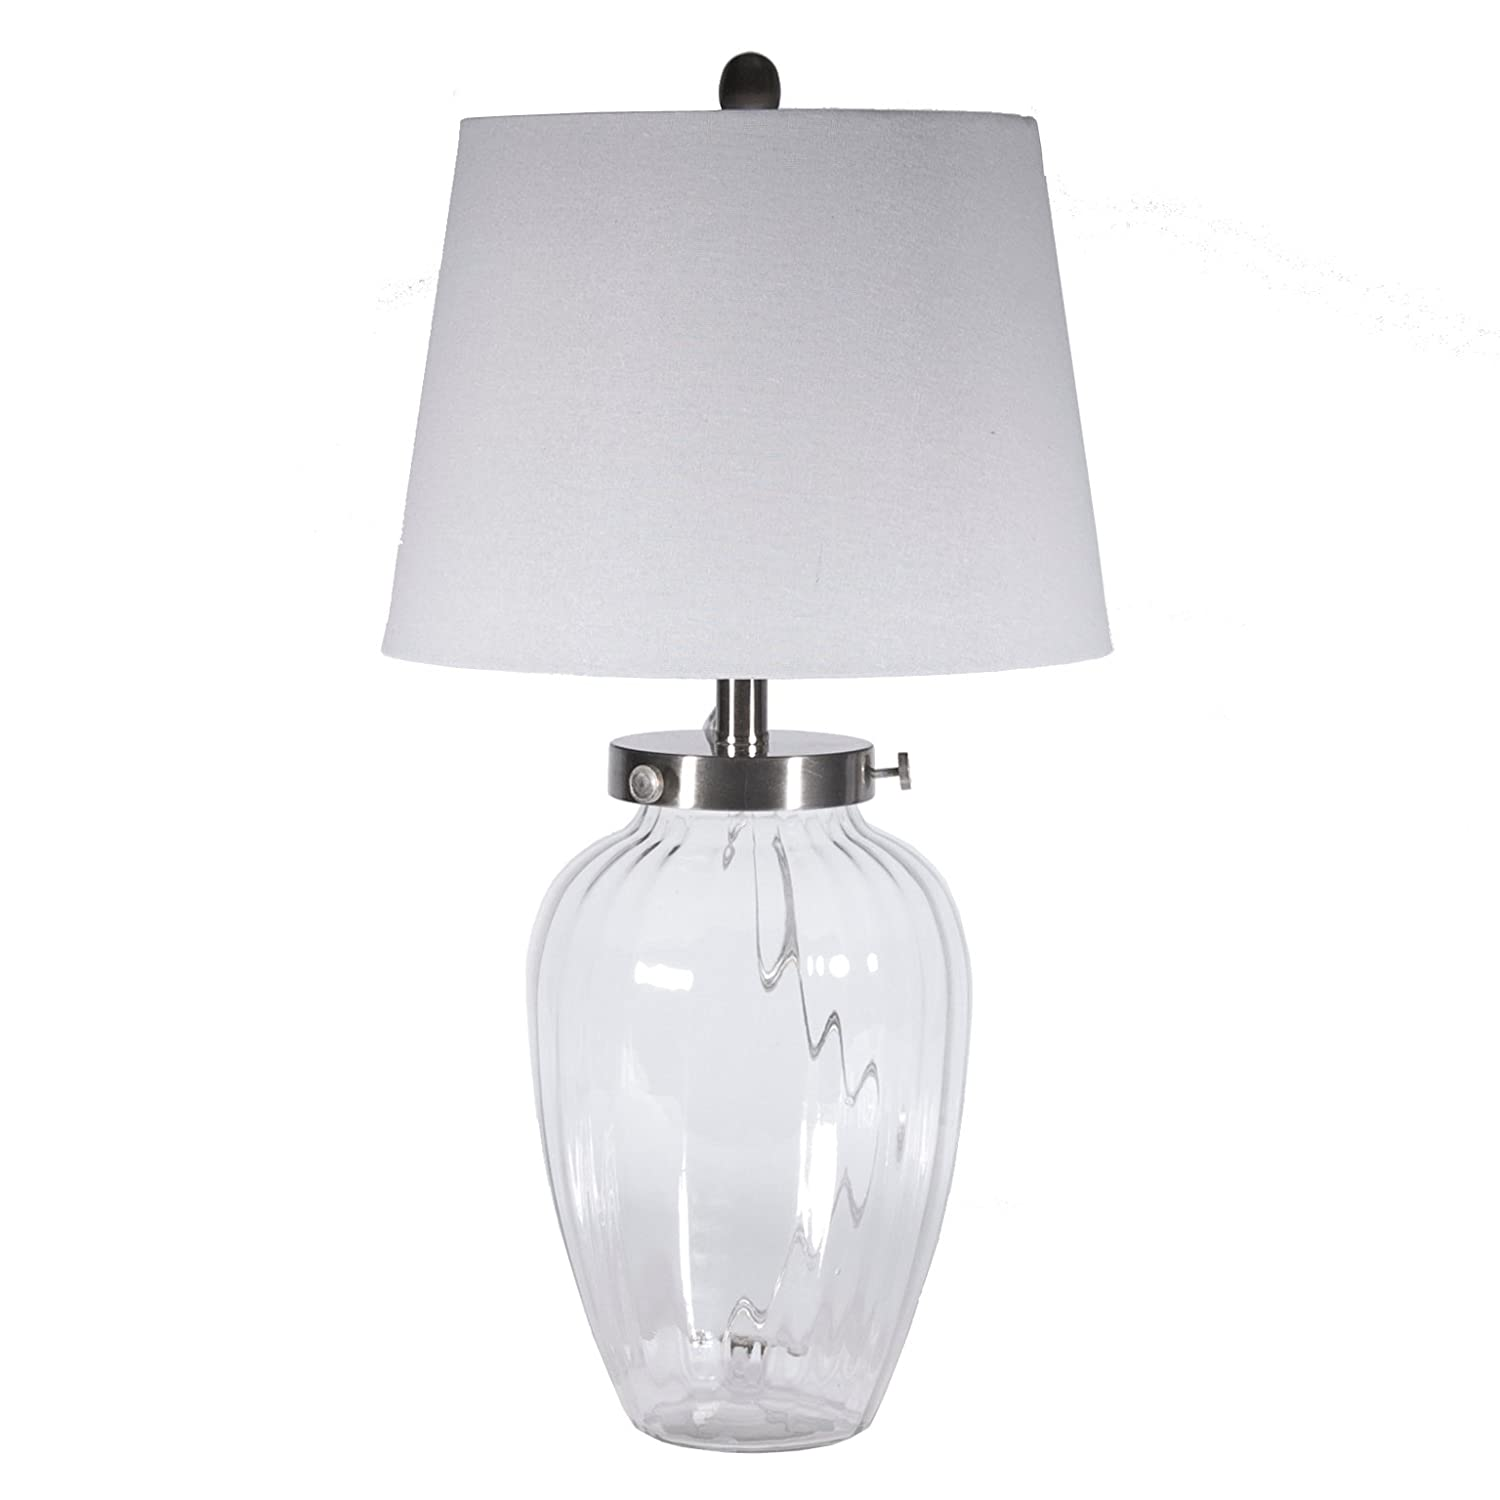 Fillable clear glass table lamp glass lamps to fill amazon aloadofball Image collections